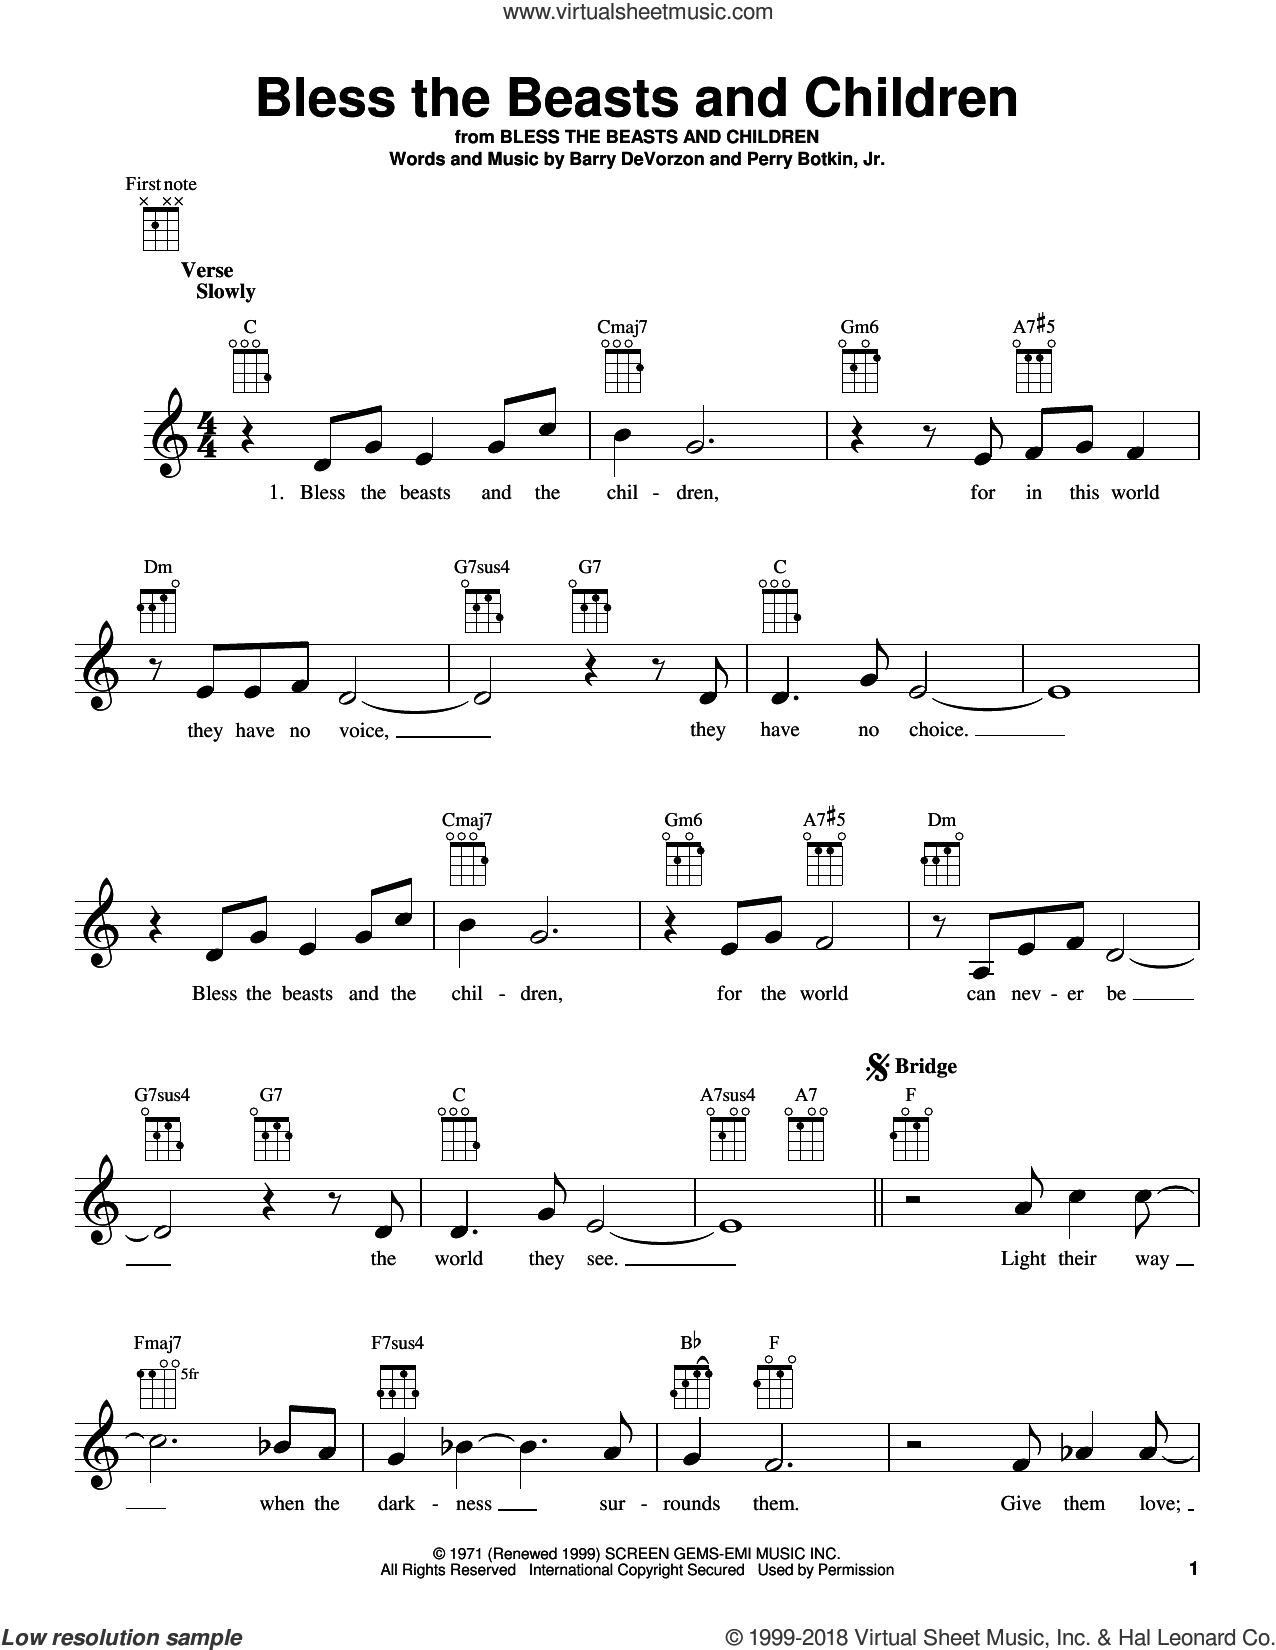 Bless The Beasts And Children sheet music for ukulele by Perry Botkin, Jr., Carpenters and Barry DeVorzon, intermediate skill level